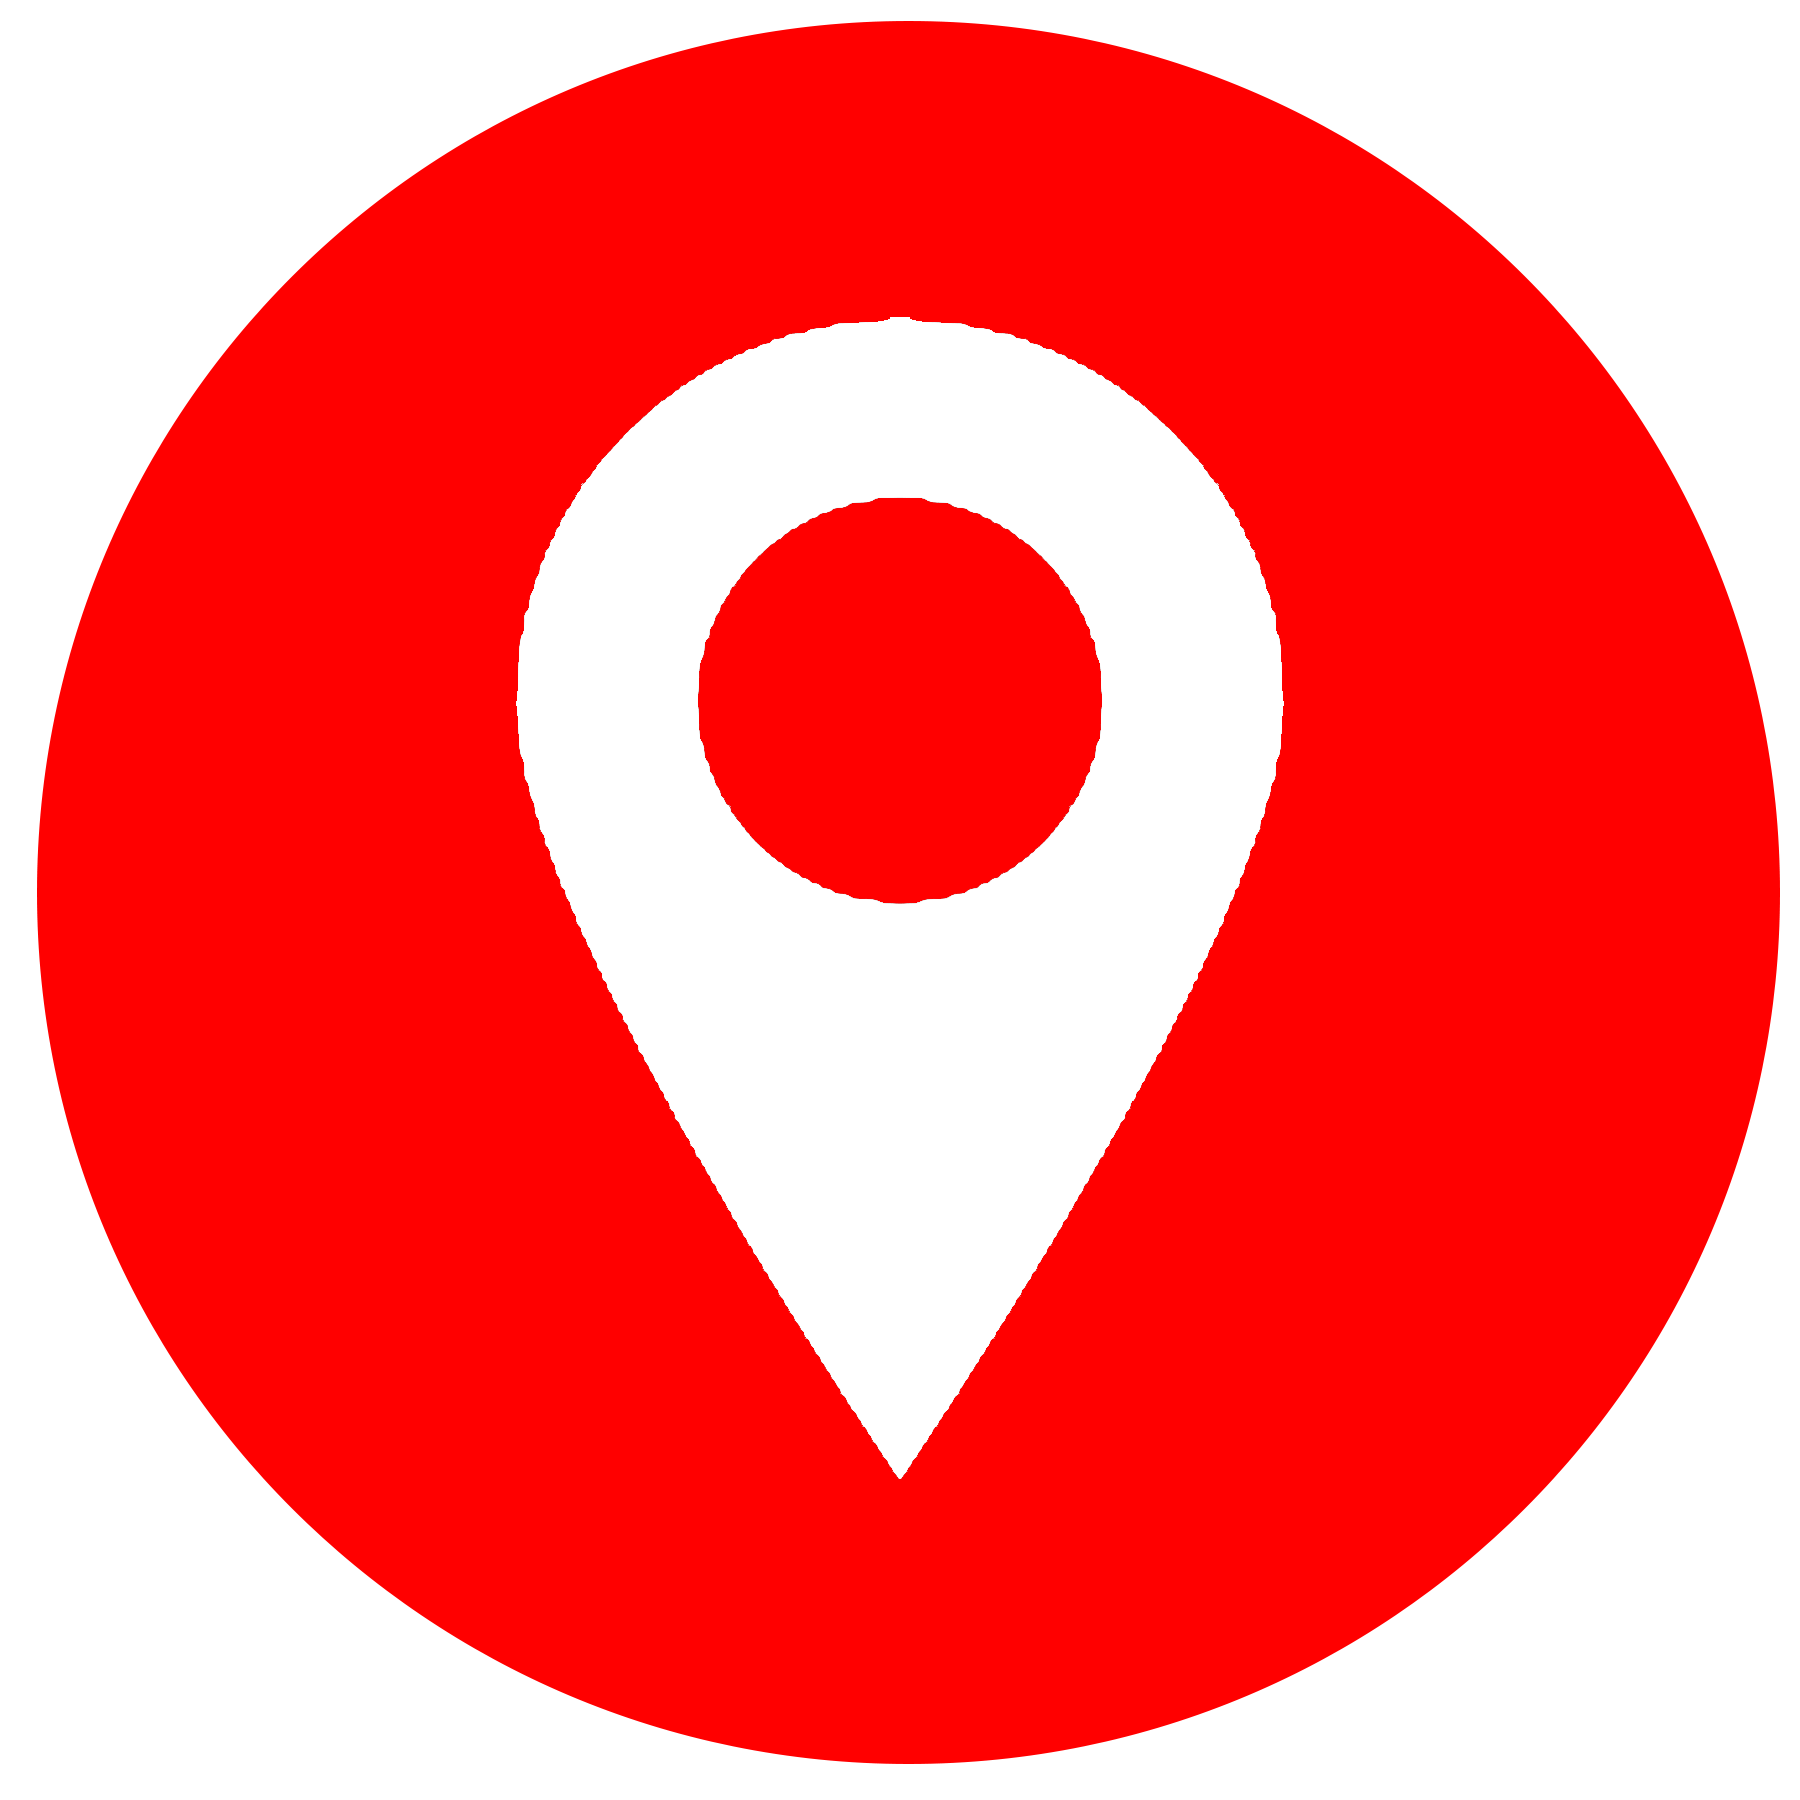 Location icon clipart free download banner freeuse Collection of Location icon clipart | Free download best Location ... banner freeuse